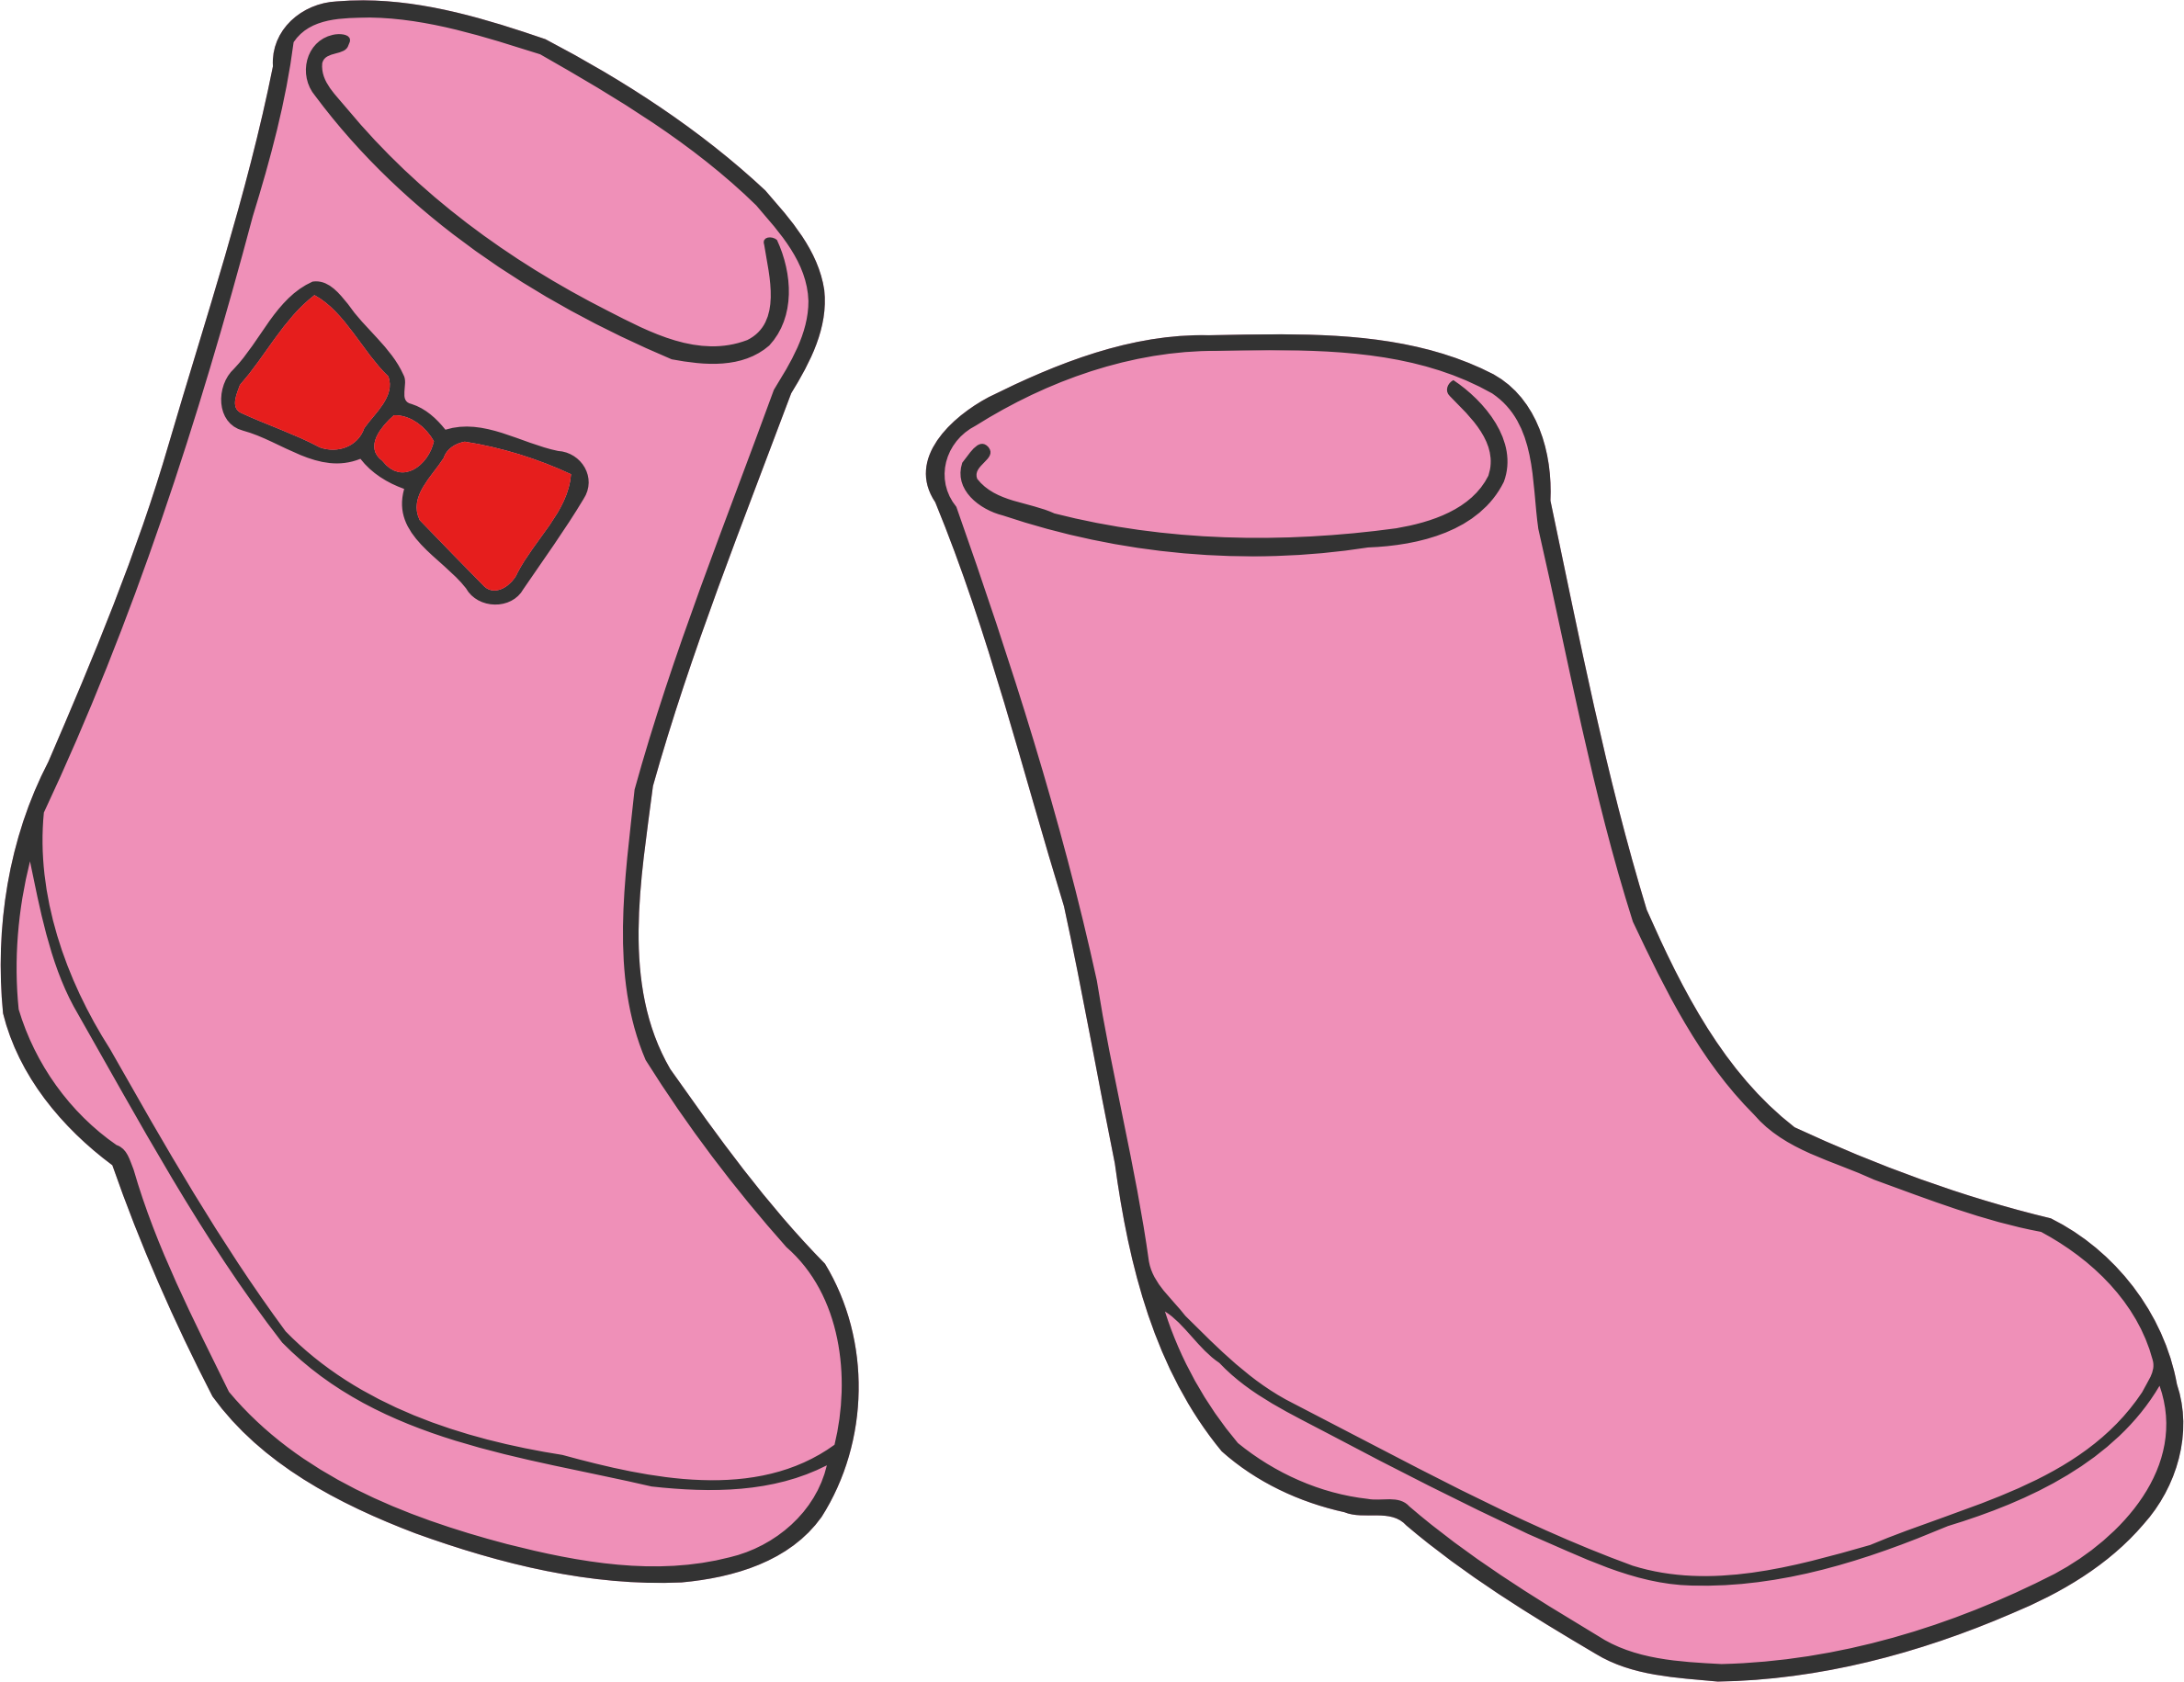 Boot clipart wellington boot. Boots big image png